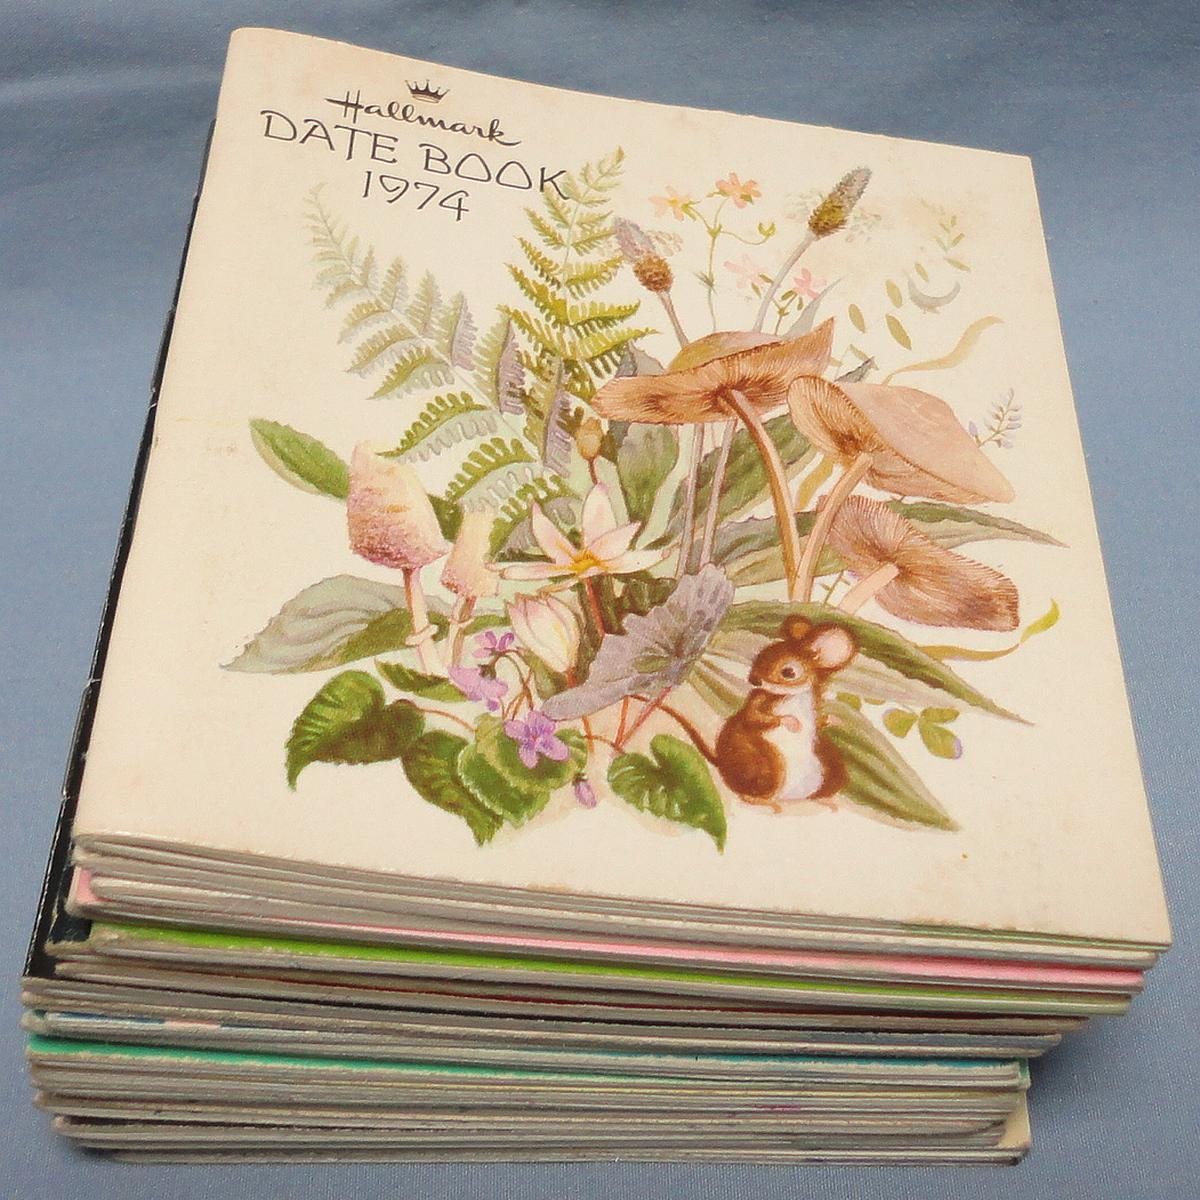 Hallmark Date Book Monthly Pocket Calendar Lot 22 Years 1974 within Free Hallmark Pocket Calendars